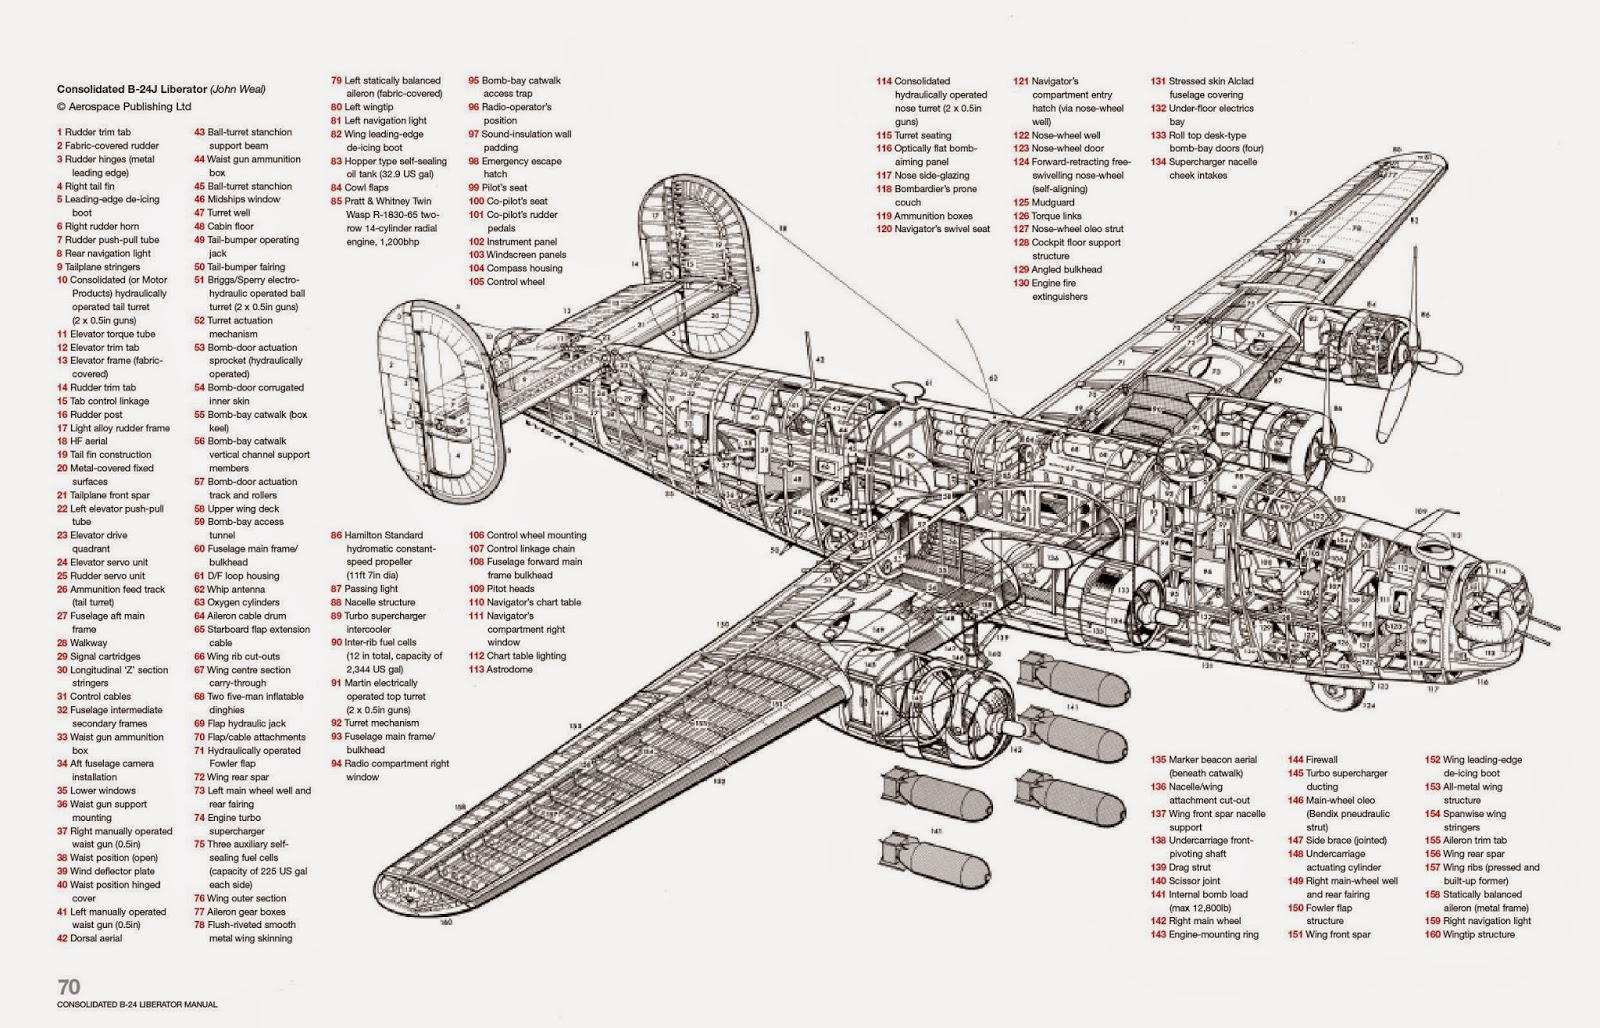 Added Some Flak Hits To This B 24 Any Recommendations On